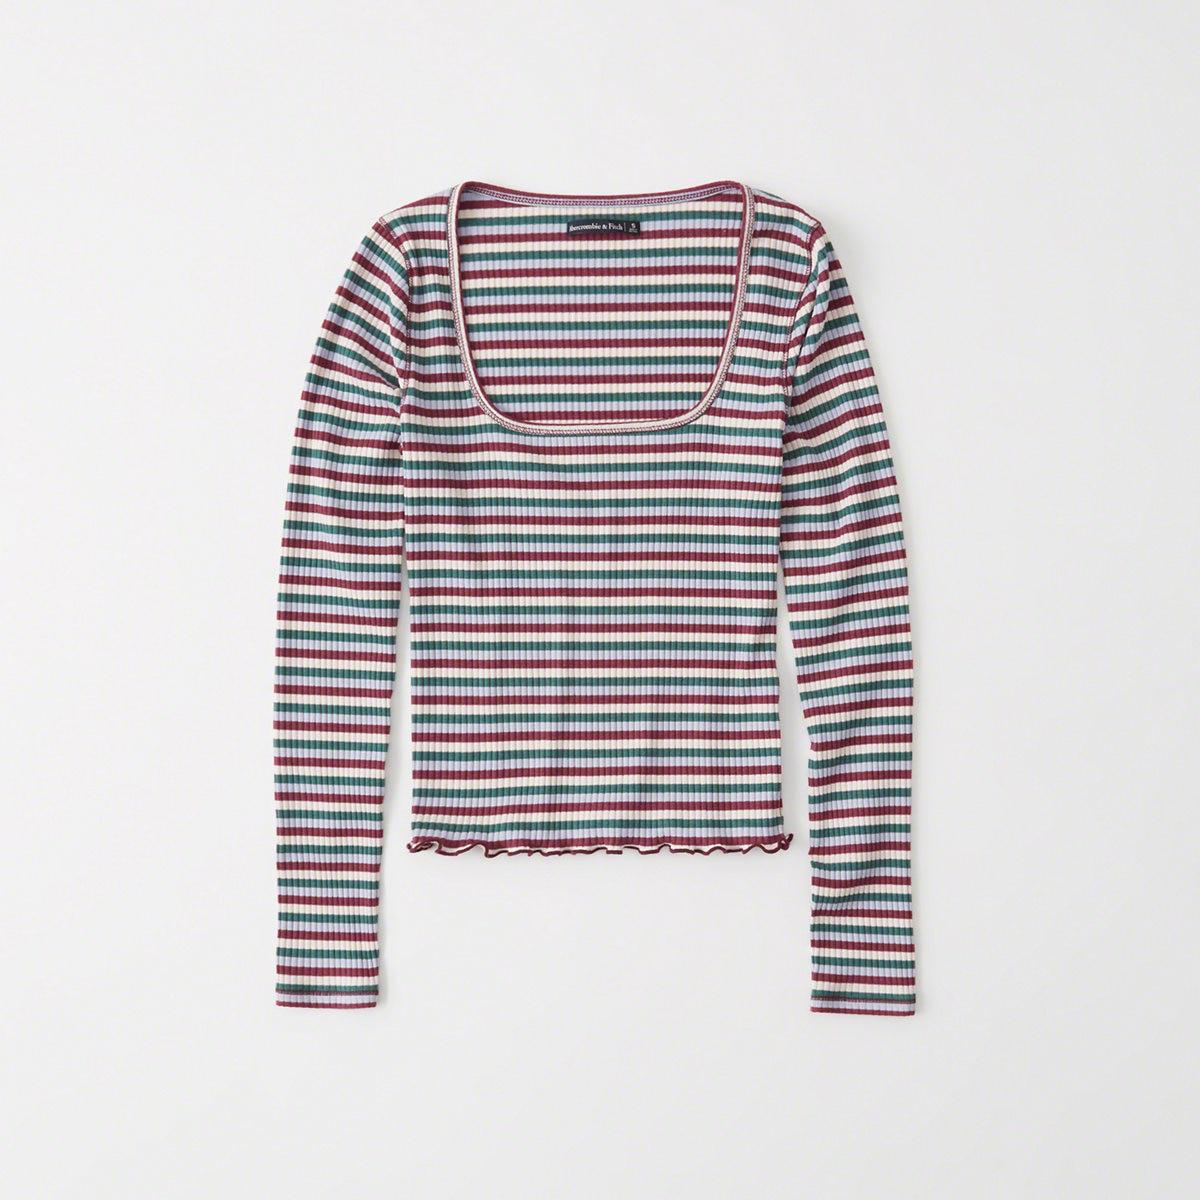 397cc7066 Abercrombie & Fitch. Women's Long-sleeve Square Neck Tee